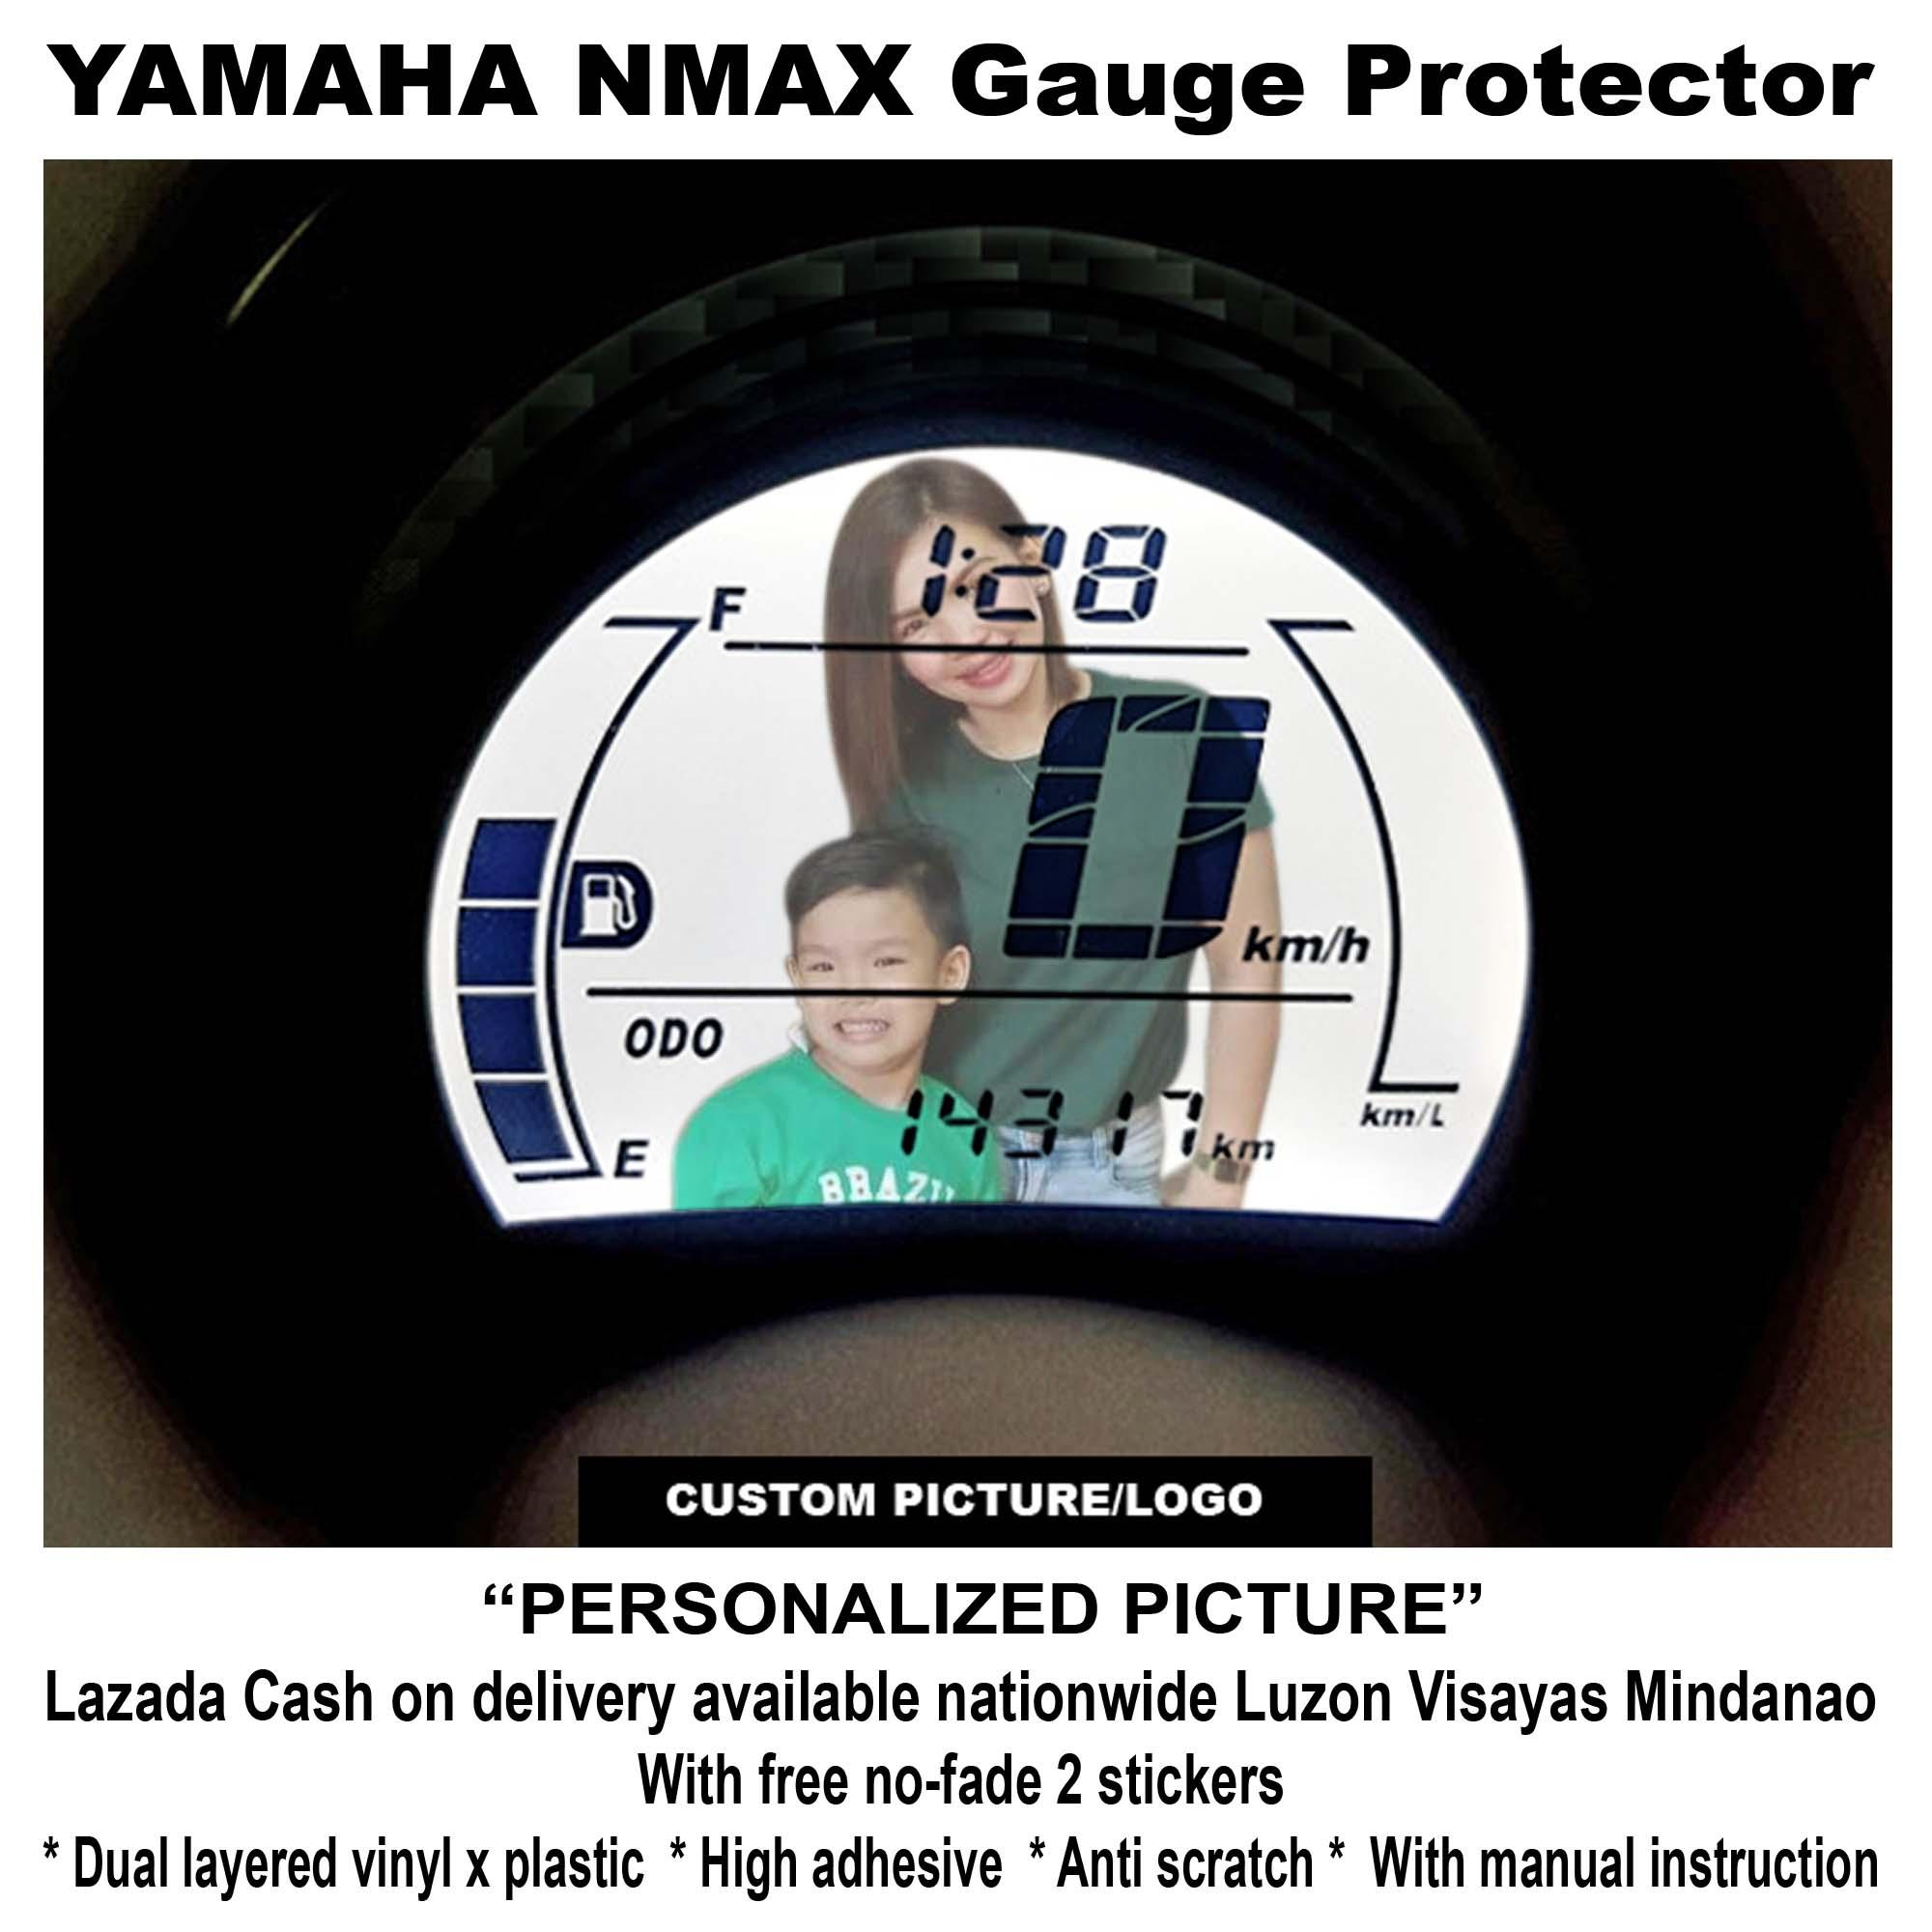 NMAX GAUGE PROTECTOR (PERSONALIZED PICTURE)